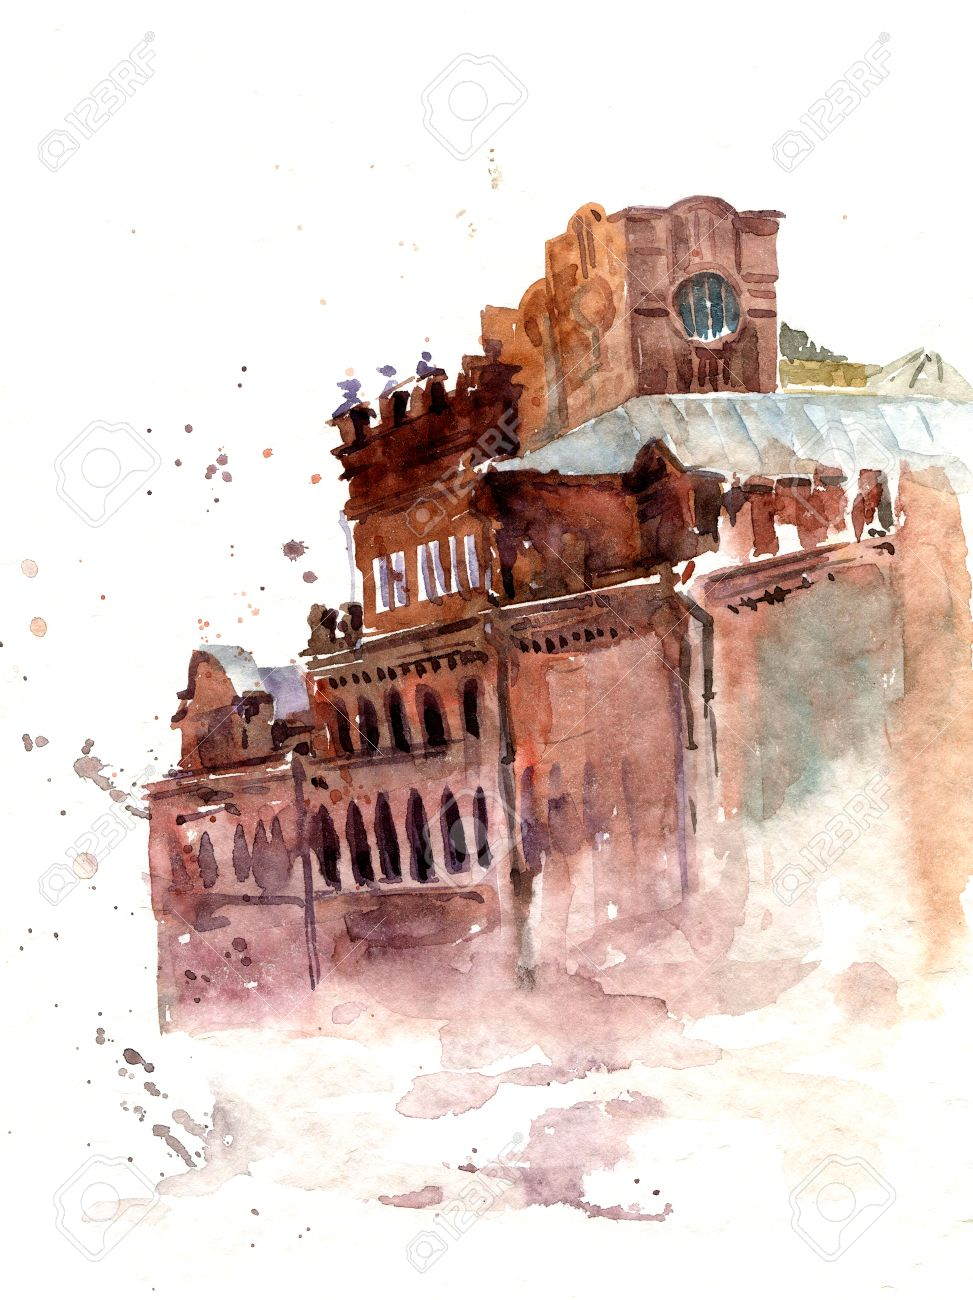 Urban Watercolor Sketch Old Red Brick City Buildings Color Hand Drawn Illustration Stock Photo